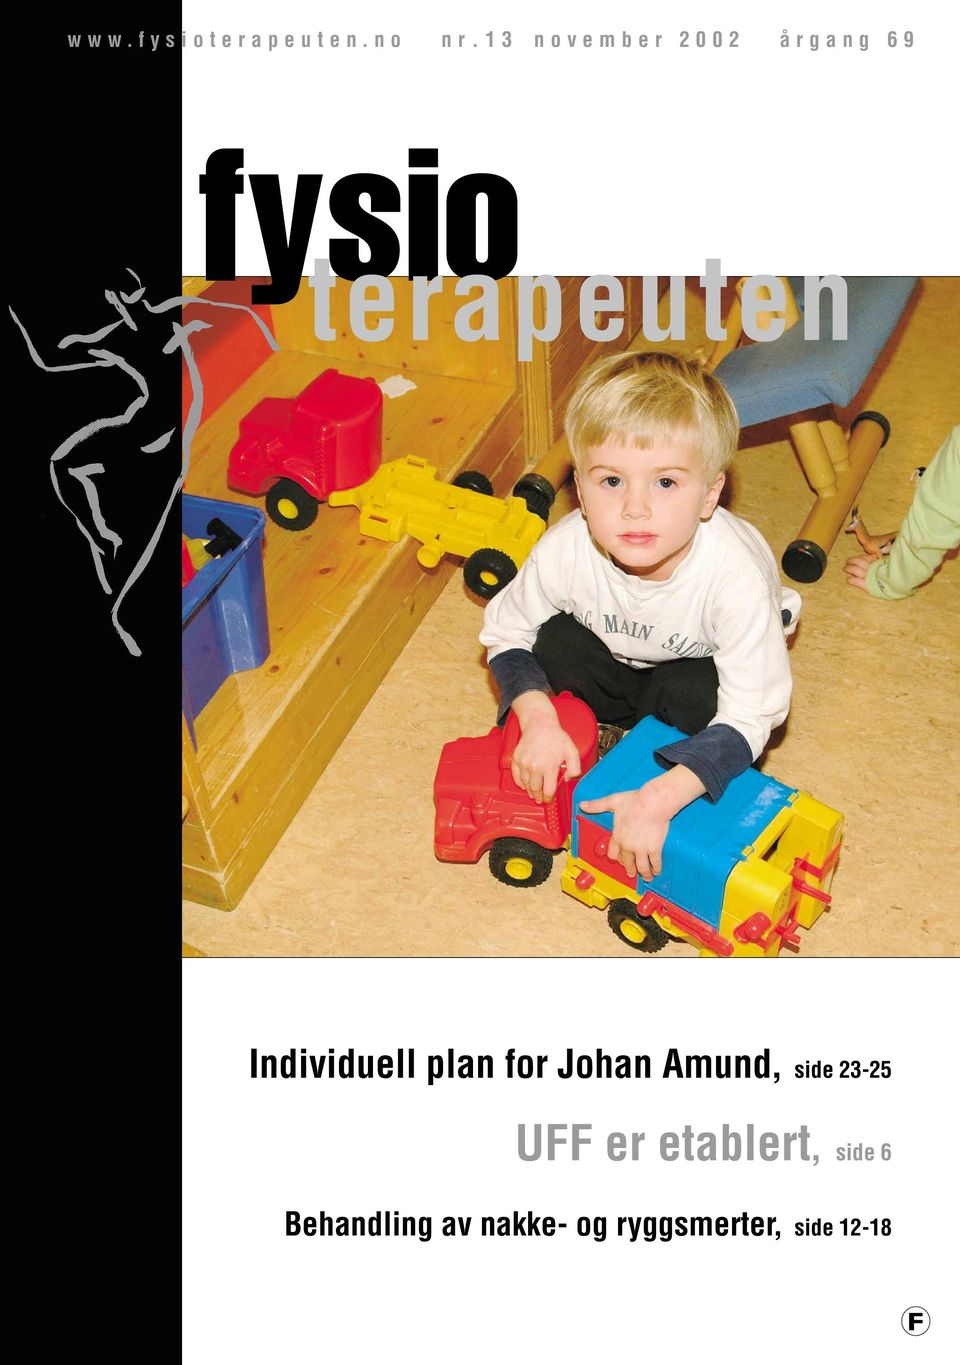 Individuell plan for Johan Amund, side 23-25